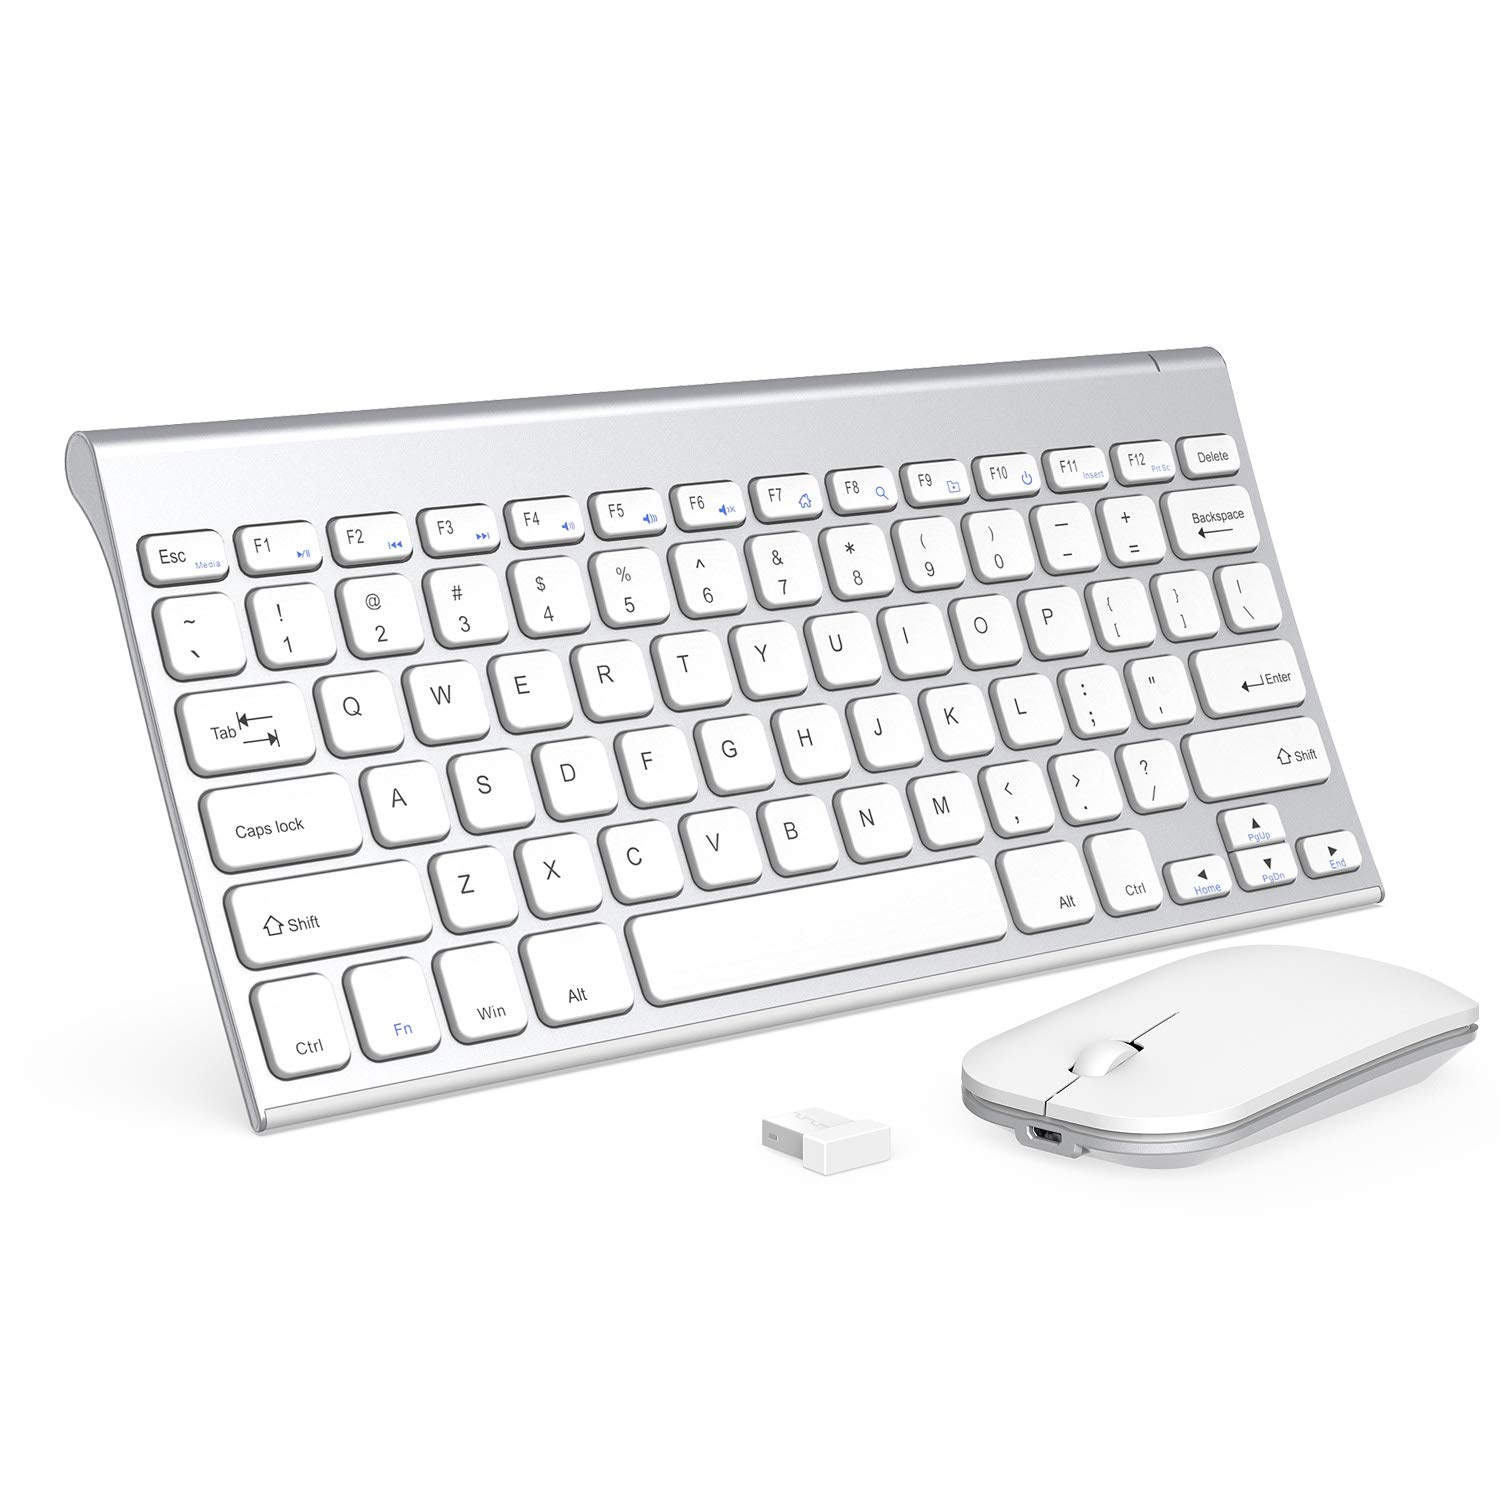 Wireless Keyboard, Seenda Ultra Compact Rechargeable Multi Device Wireless Keyboard for Smartphones Tablet PC, Compatible with Windows Android iOS Mac System IWG-03-SD-YS-N